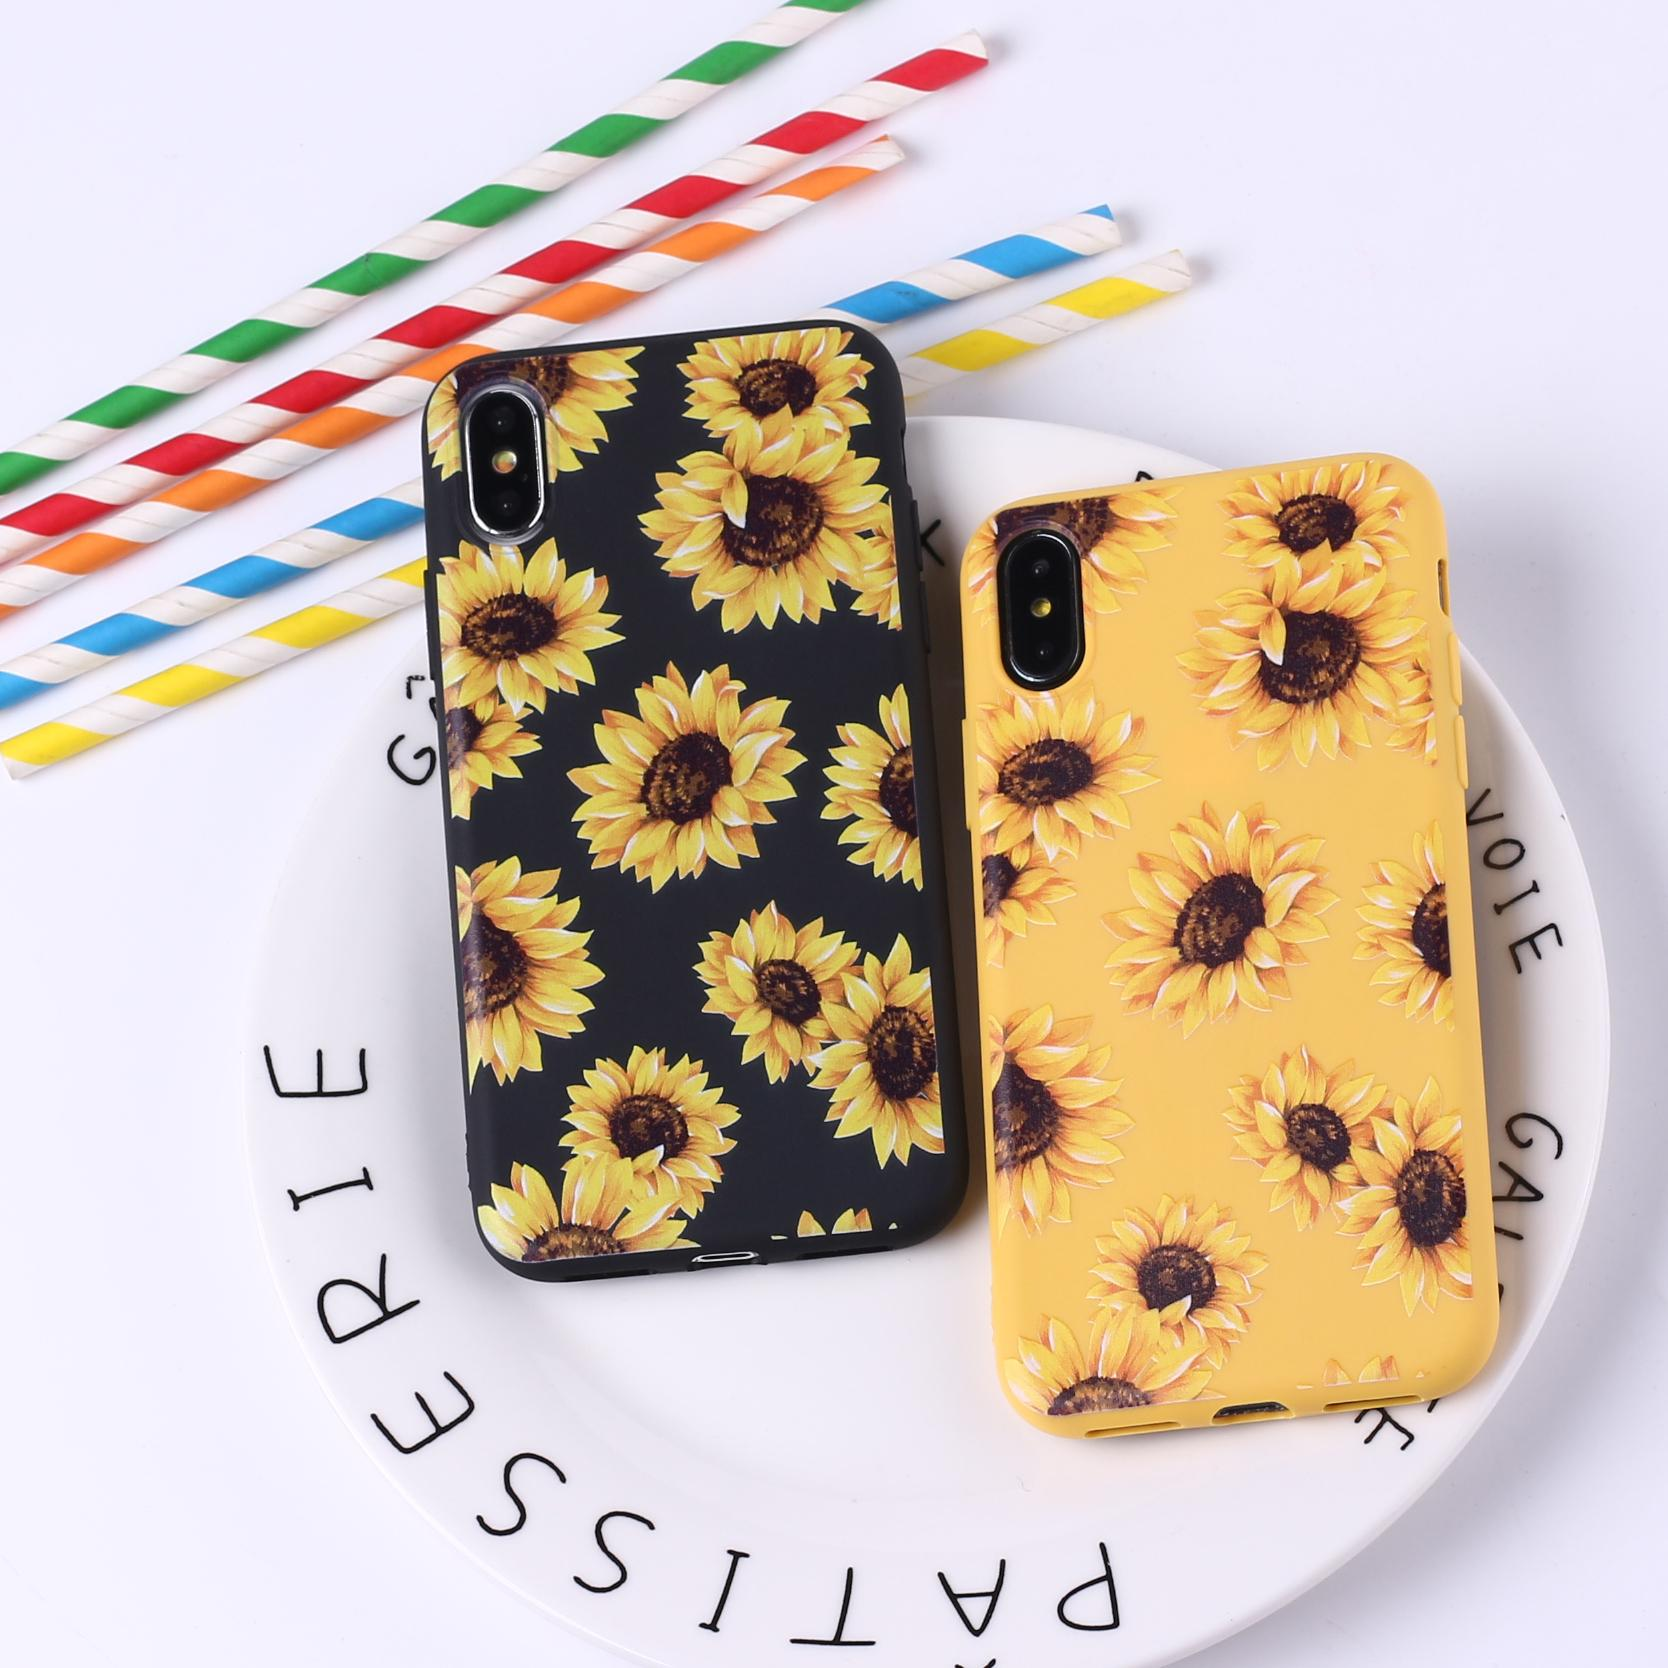 new arrival 0e643 12964 Cute Summer Daisy Sunflower Floral Flower Soft Silicone Candy Case Coque  For iPhone 6 6S 5S SE 8 8Plus X 7 7Plus X XR XS Max